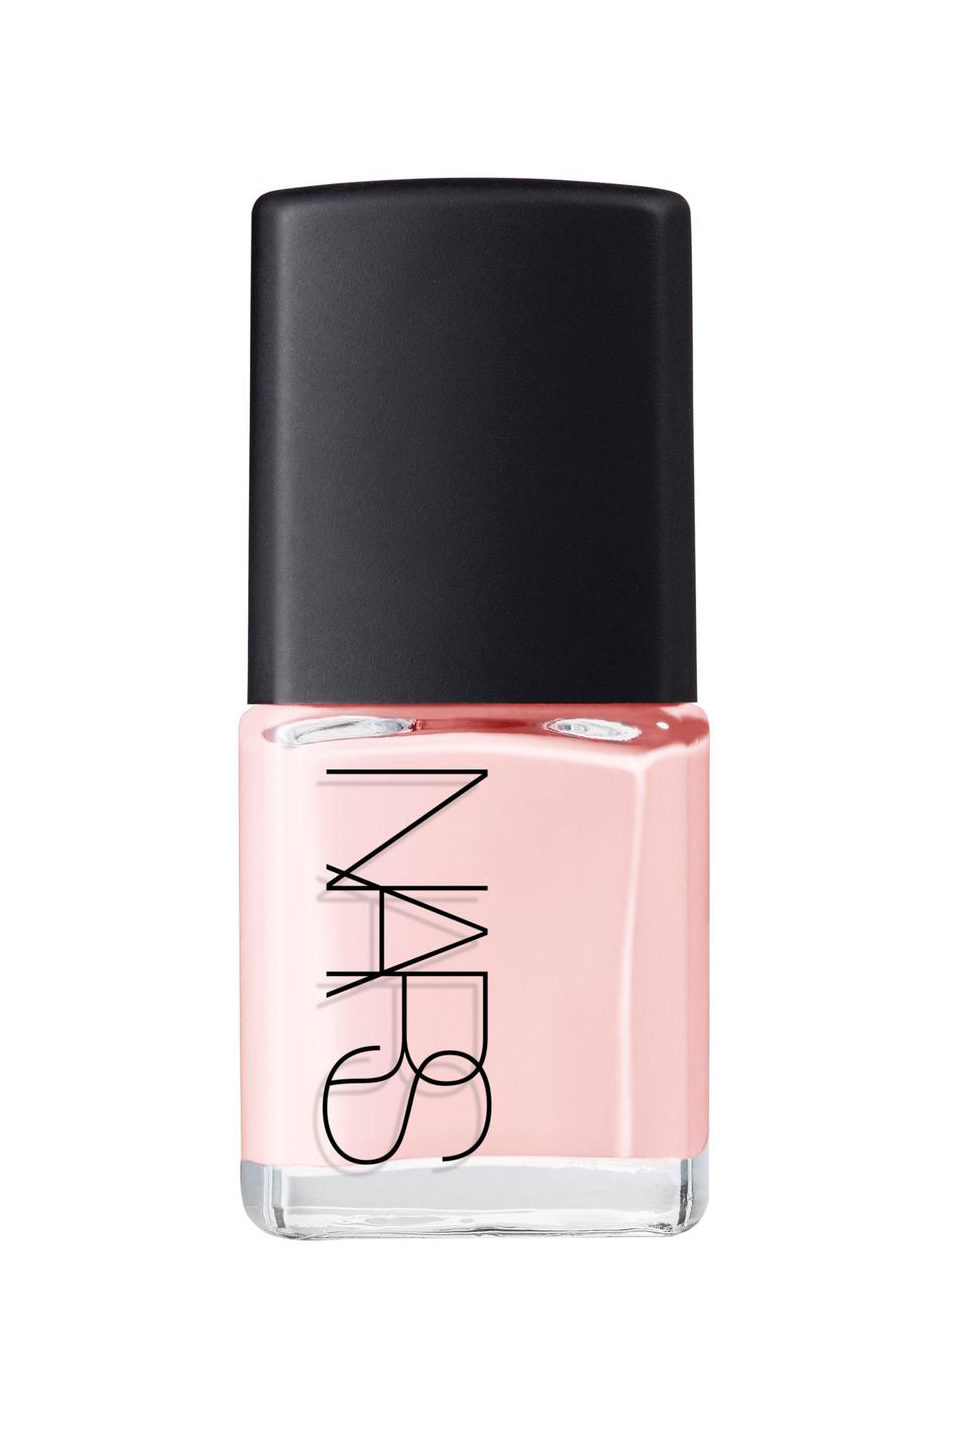 Best nude nail polish: Shades to suit every skin tone